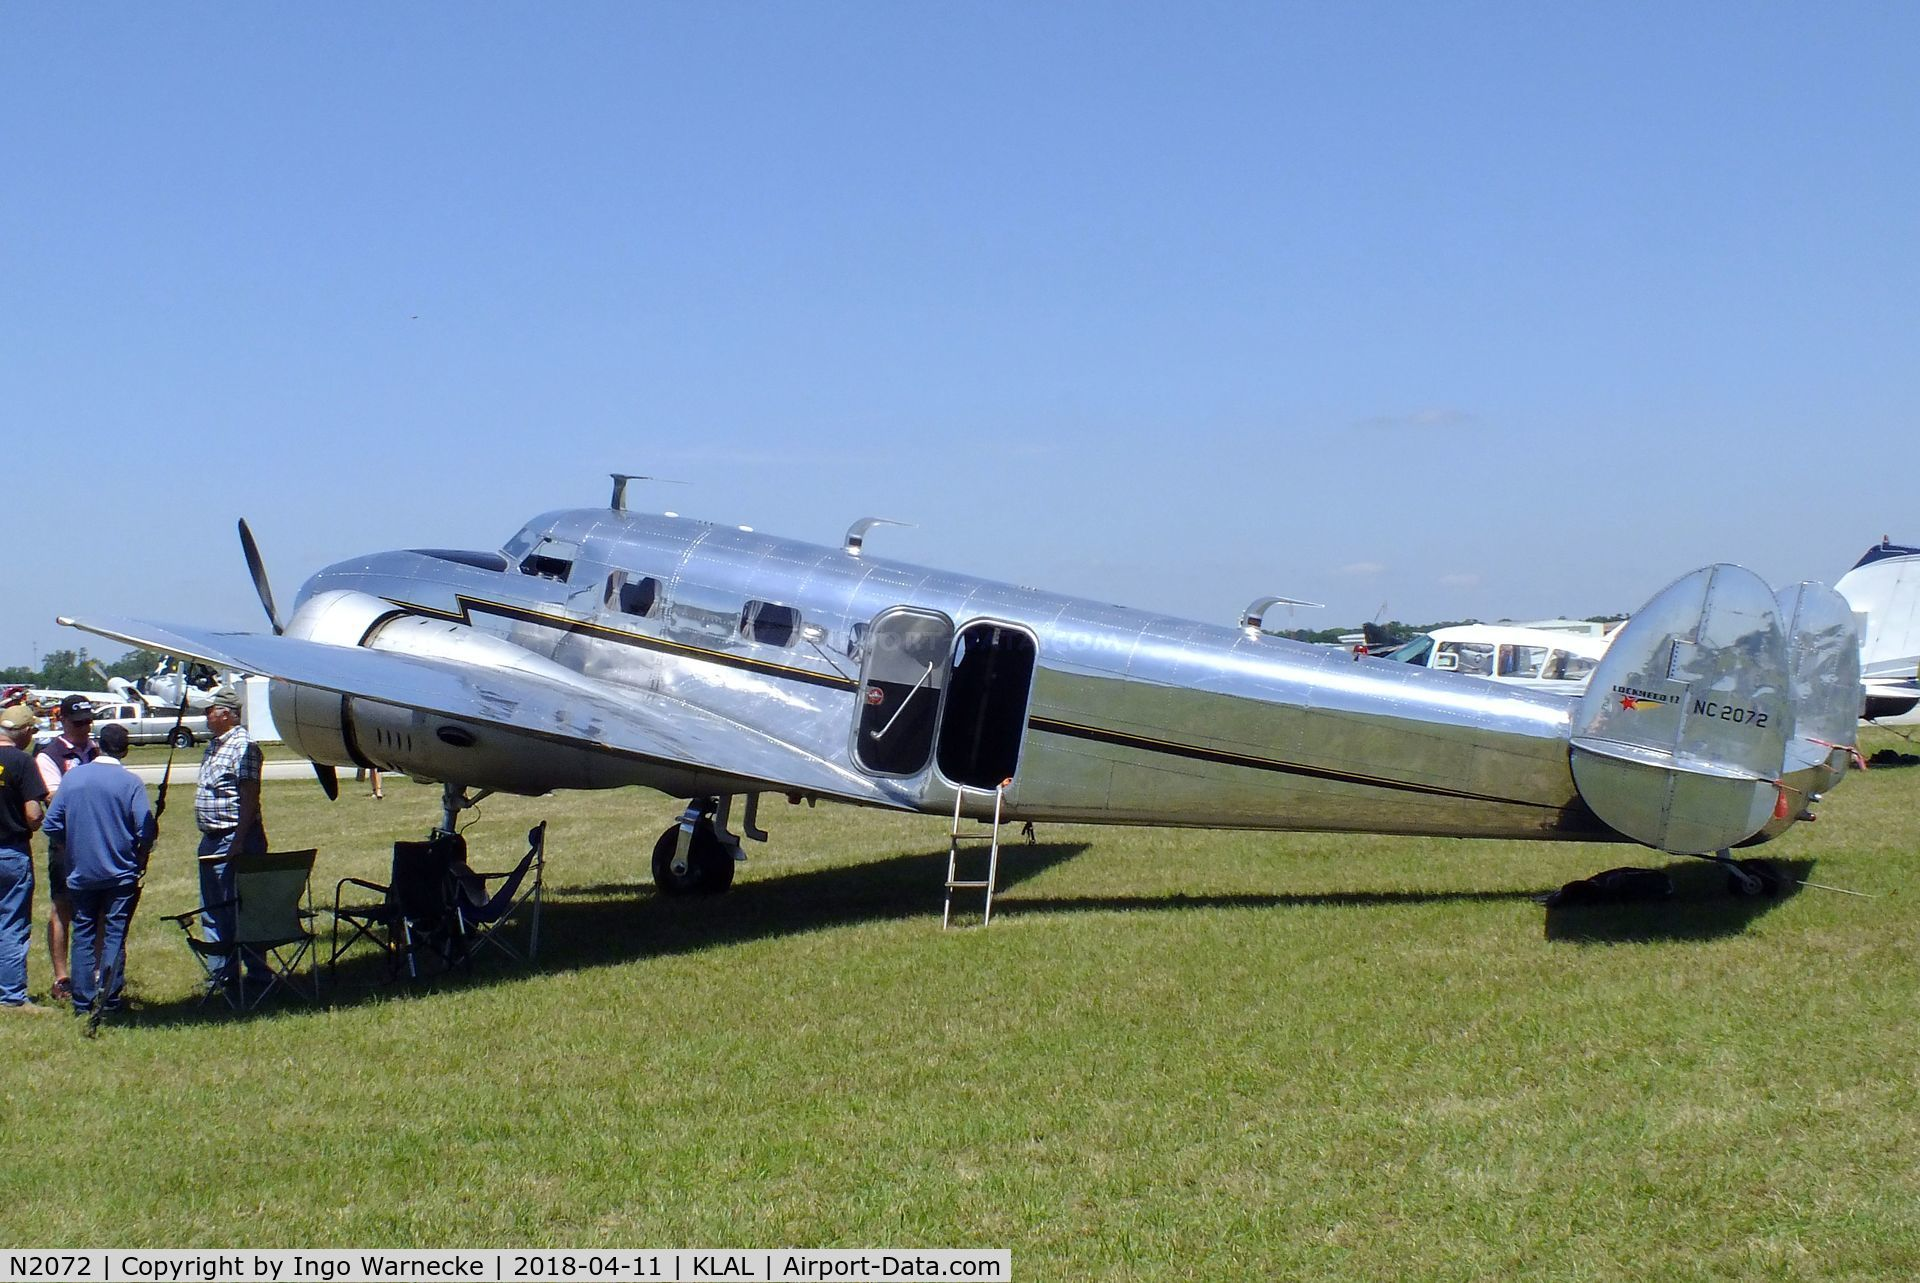 N2072, 1936 Lockheed 12A Electra Junior C/N 1208, Lockheed 12A Electra Junior at 2018 Sun 'n Fun, Lakeland FL